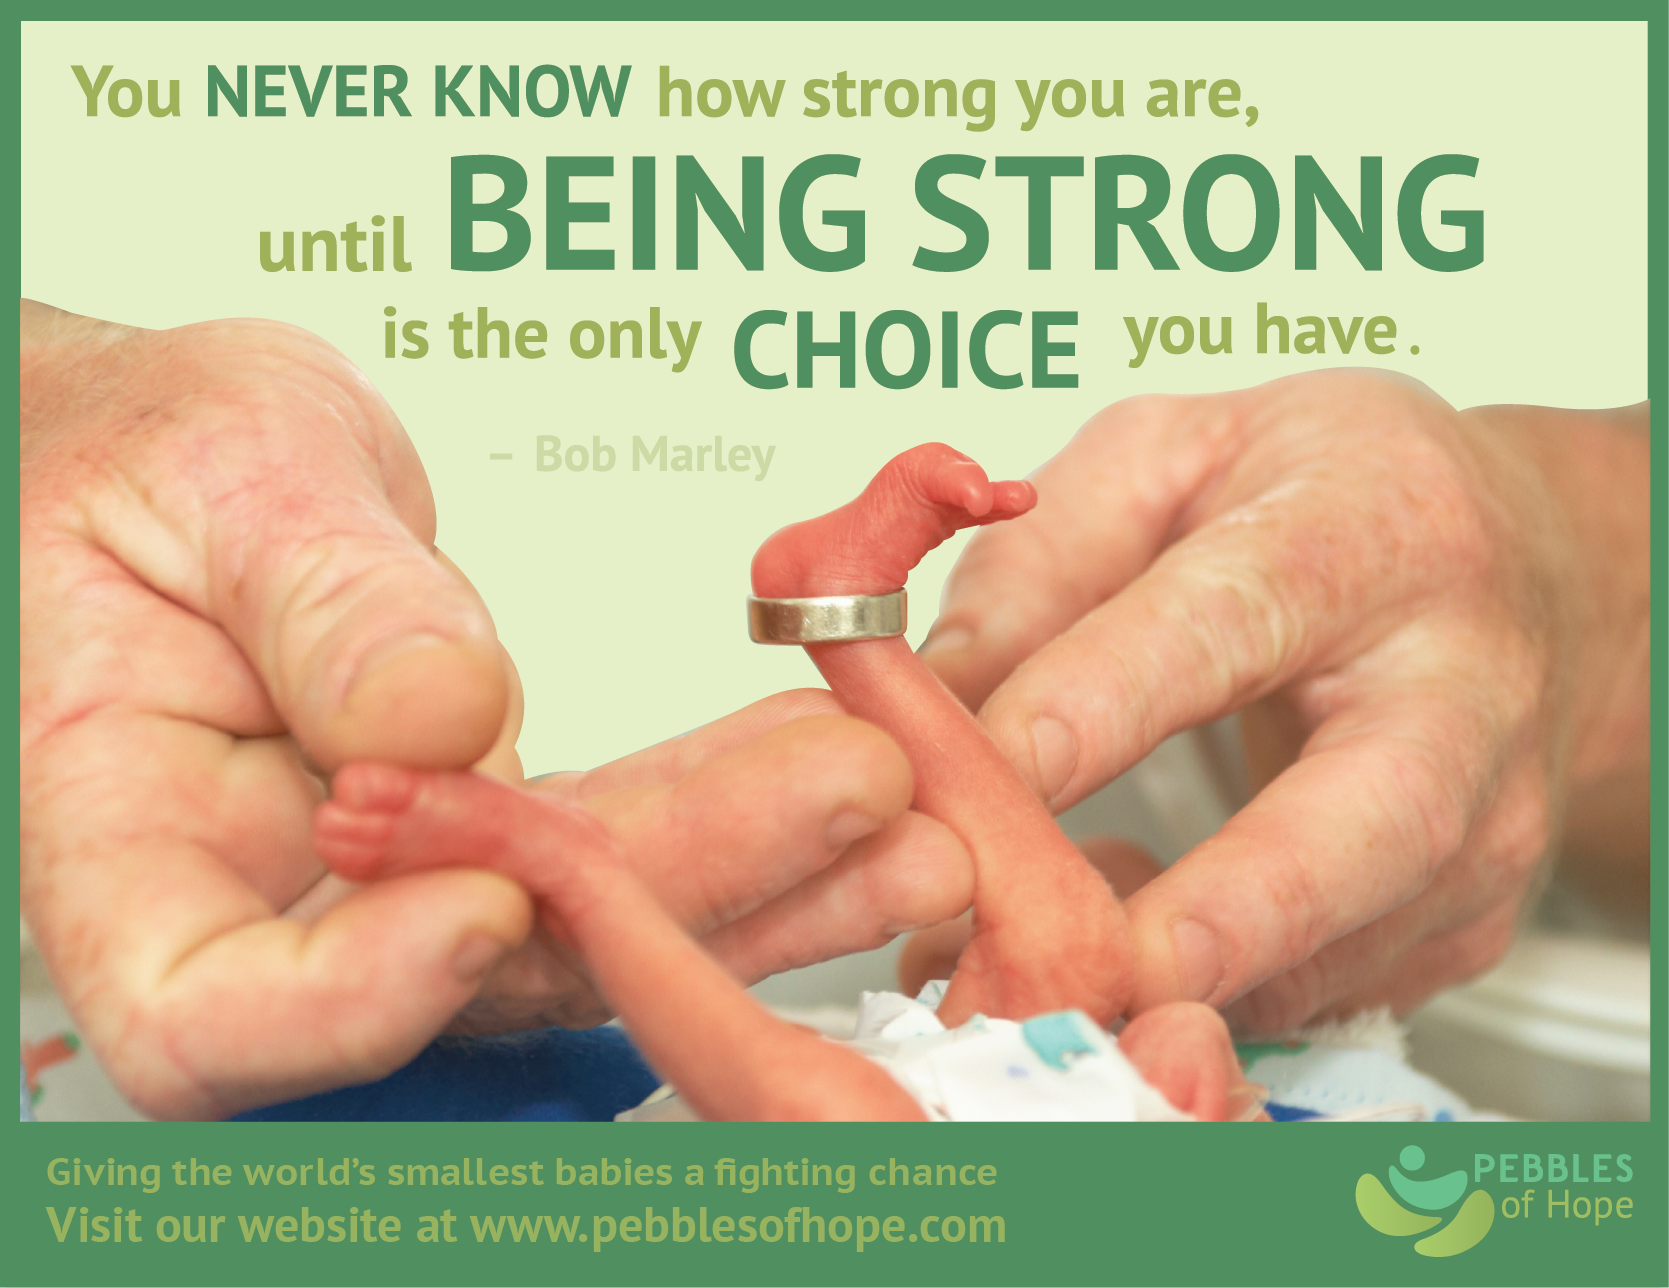 Inspiring Quotes For Parents And Caregivers Of Premature Babies